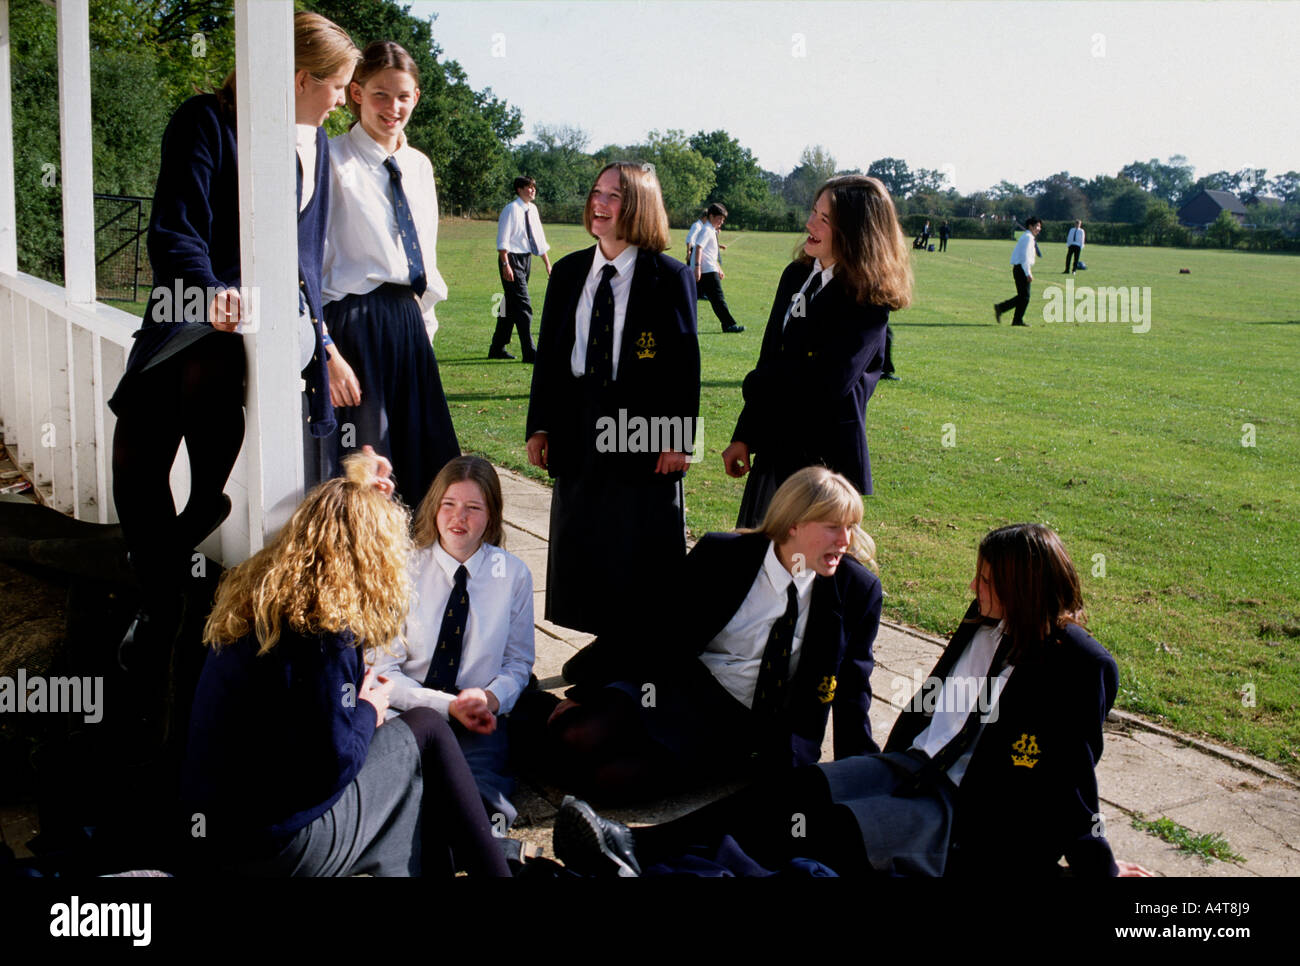 Female students at rural private secondary school - Stock Image